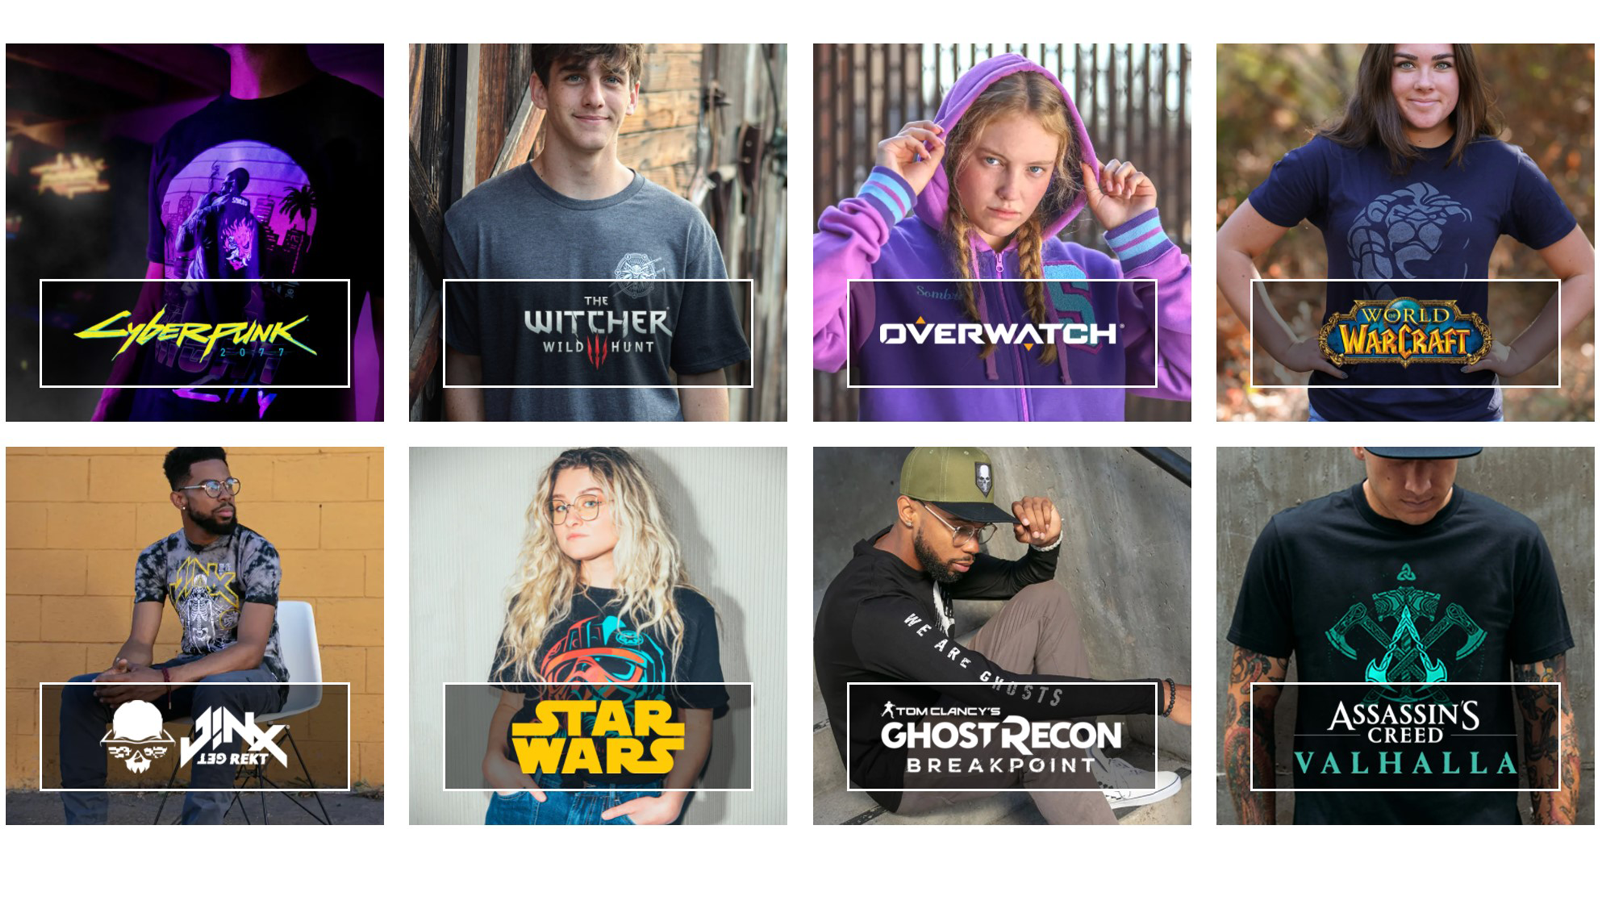 Jinx, an online store for buying video game merch